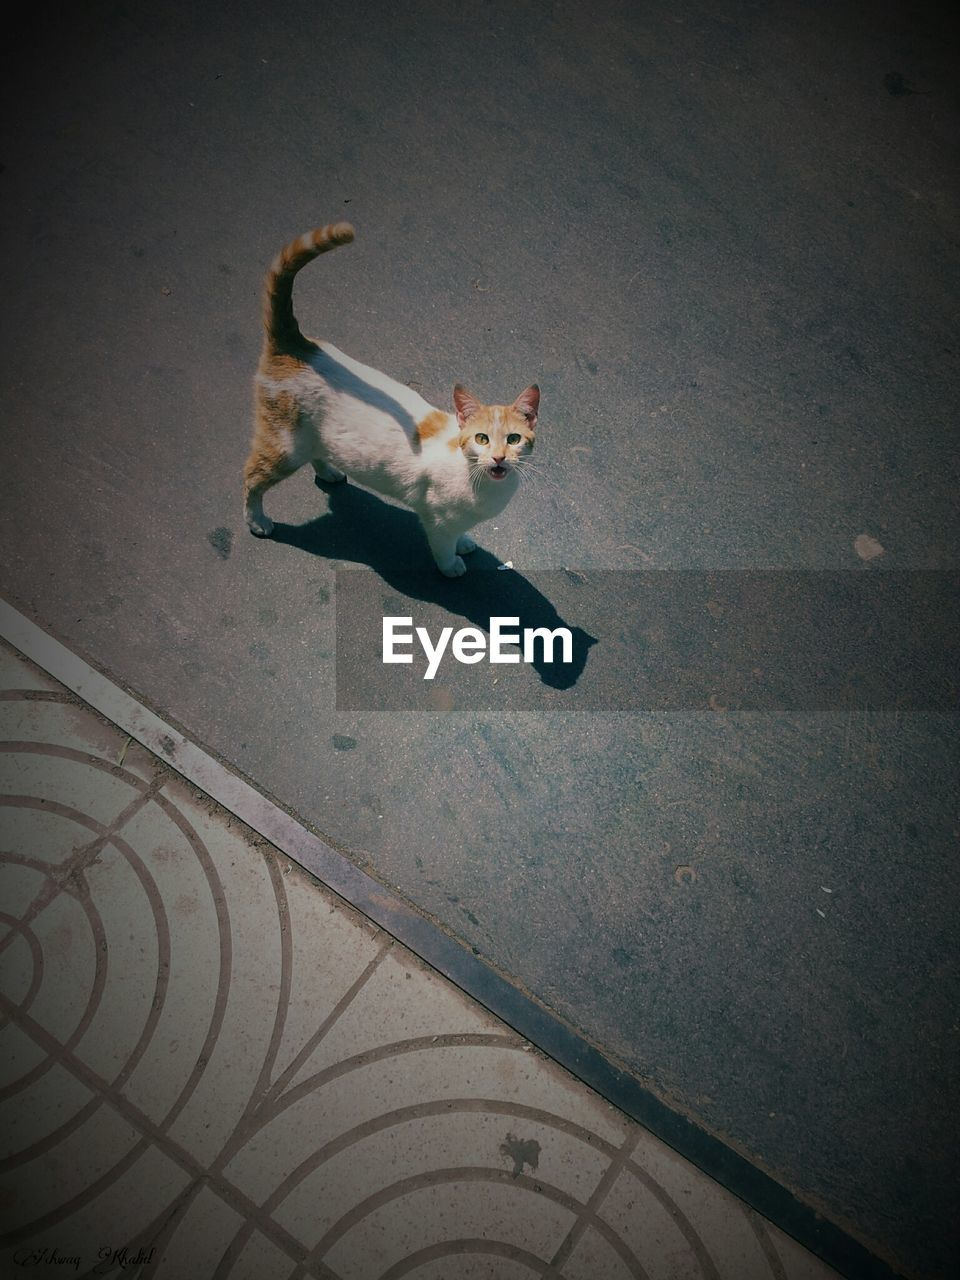 Elevated View Of Cat Looking At Camera